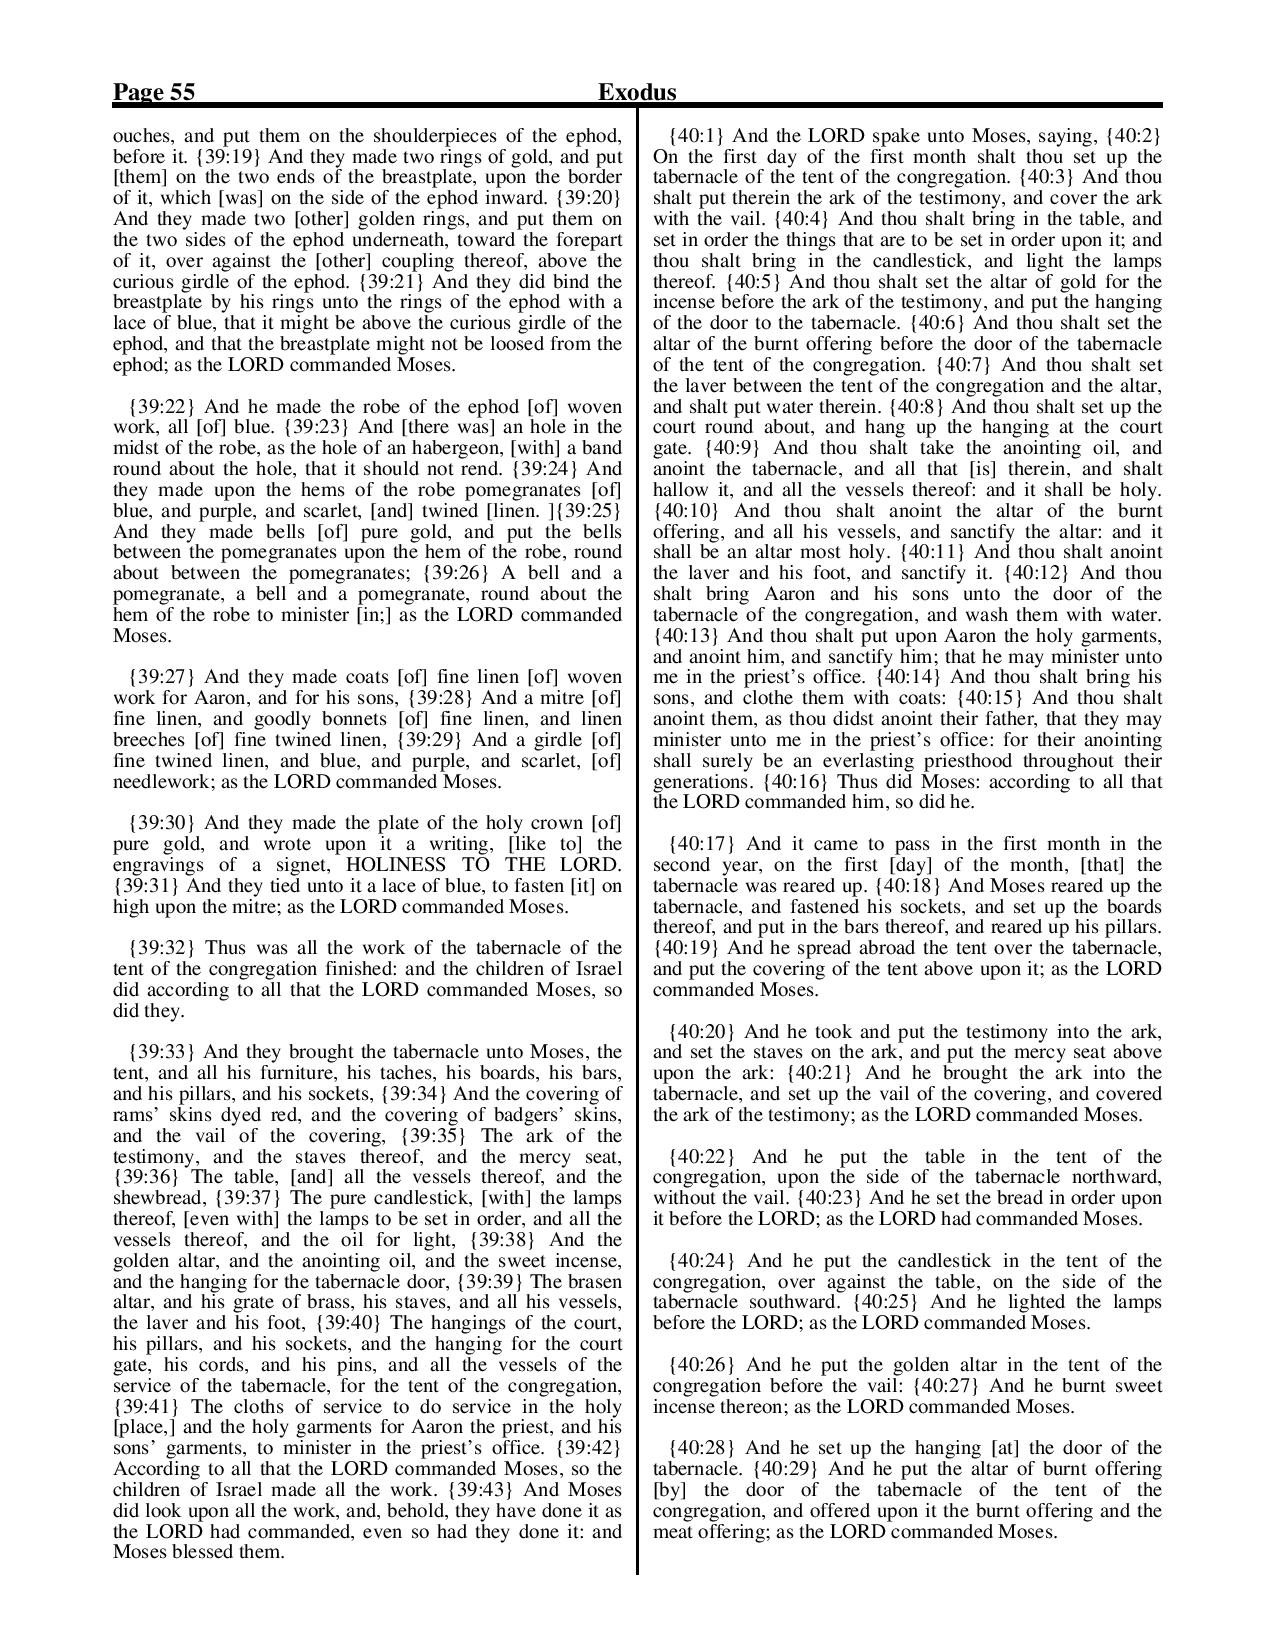 King-James-Bible-KJV-Bible-PDF-page-076